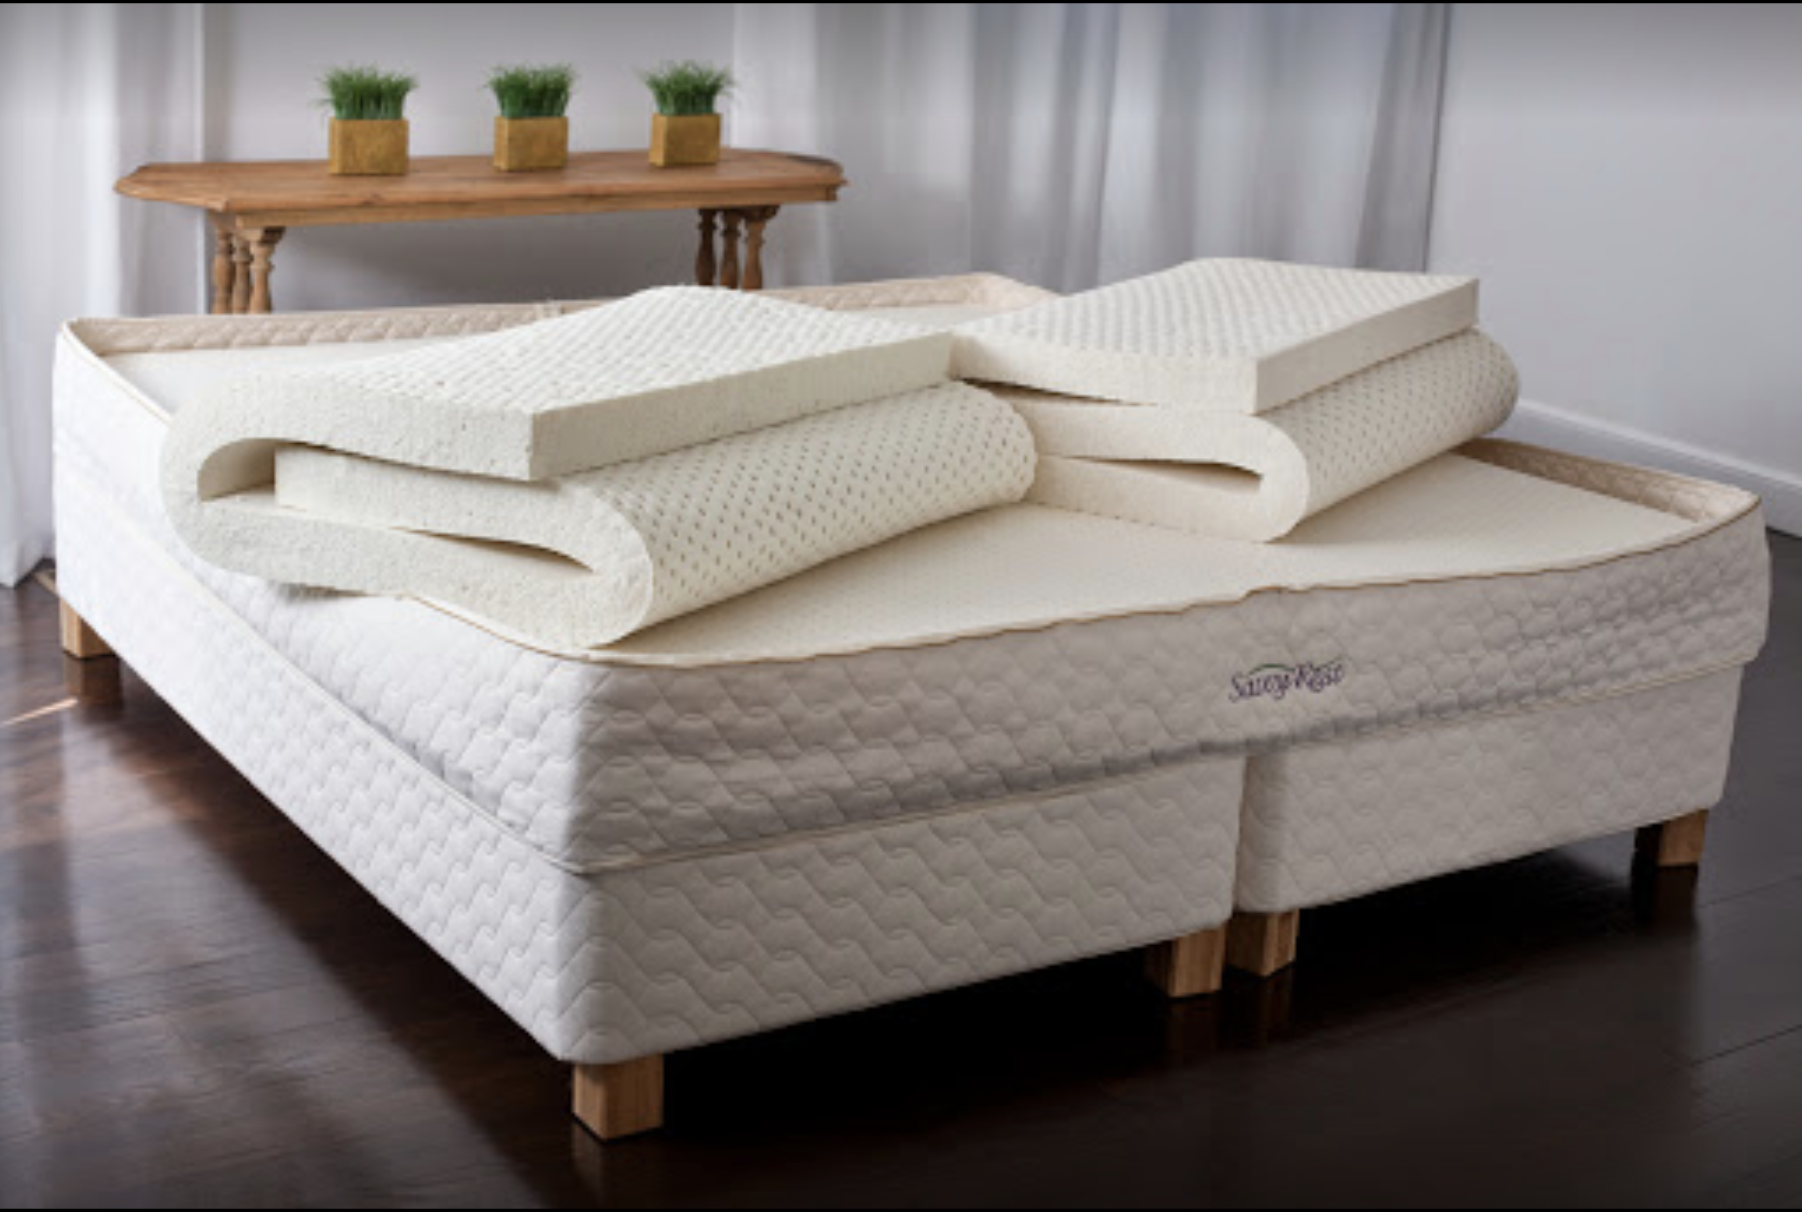 Savvy Rest Natural Bedroom – Natural Talalay Latex Mattress And Latex Mattress Topper Store In Rockville Maryland